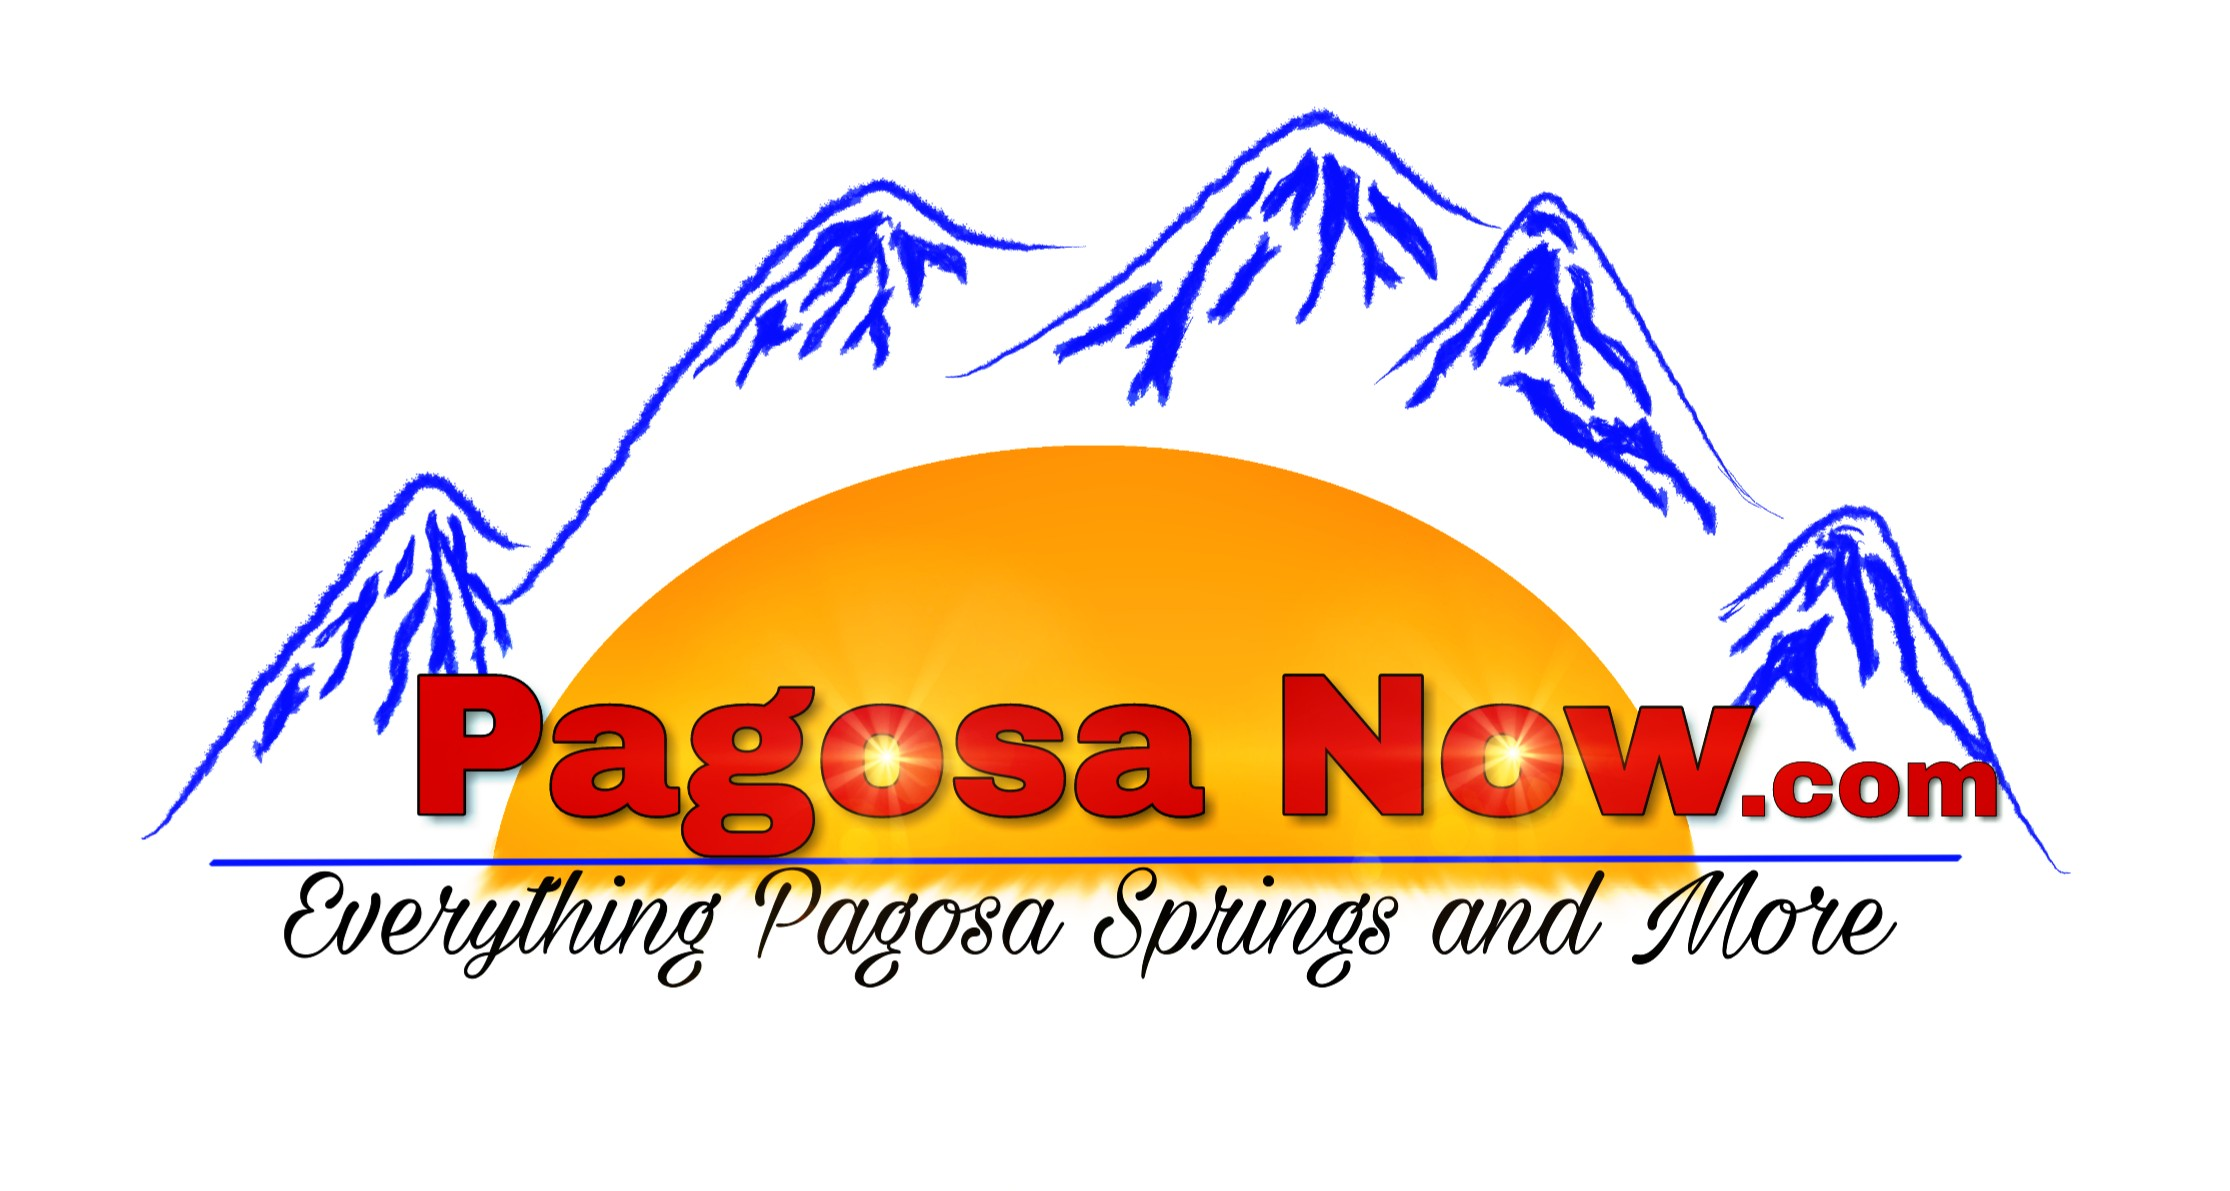 Pagosa Now